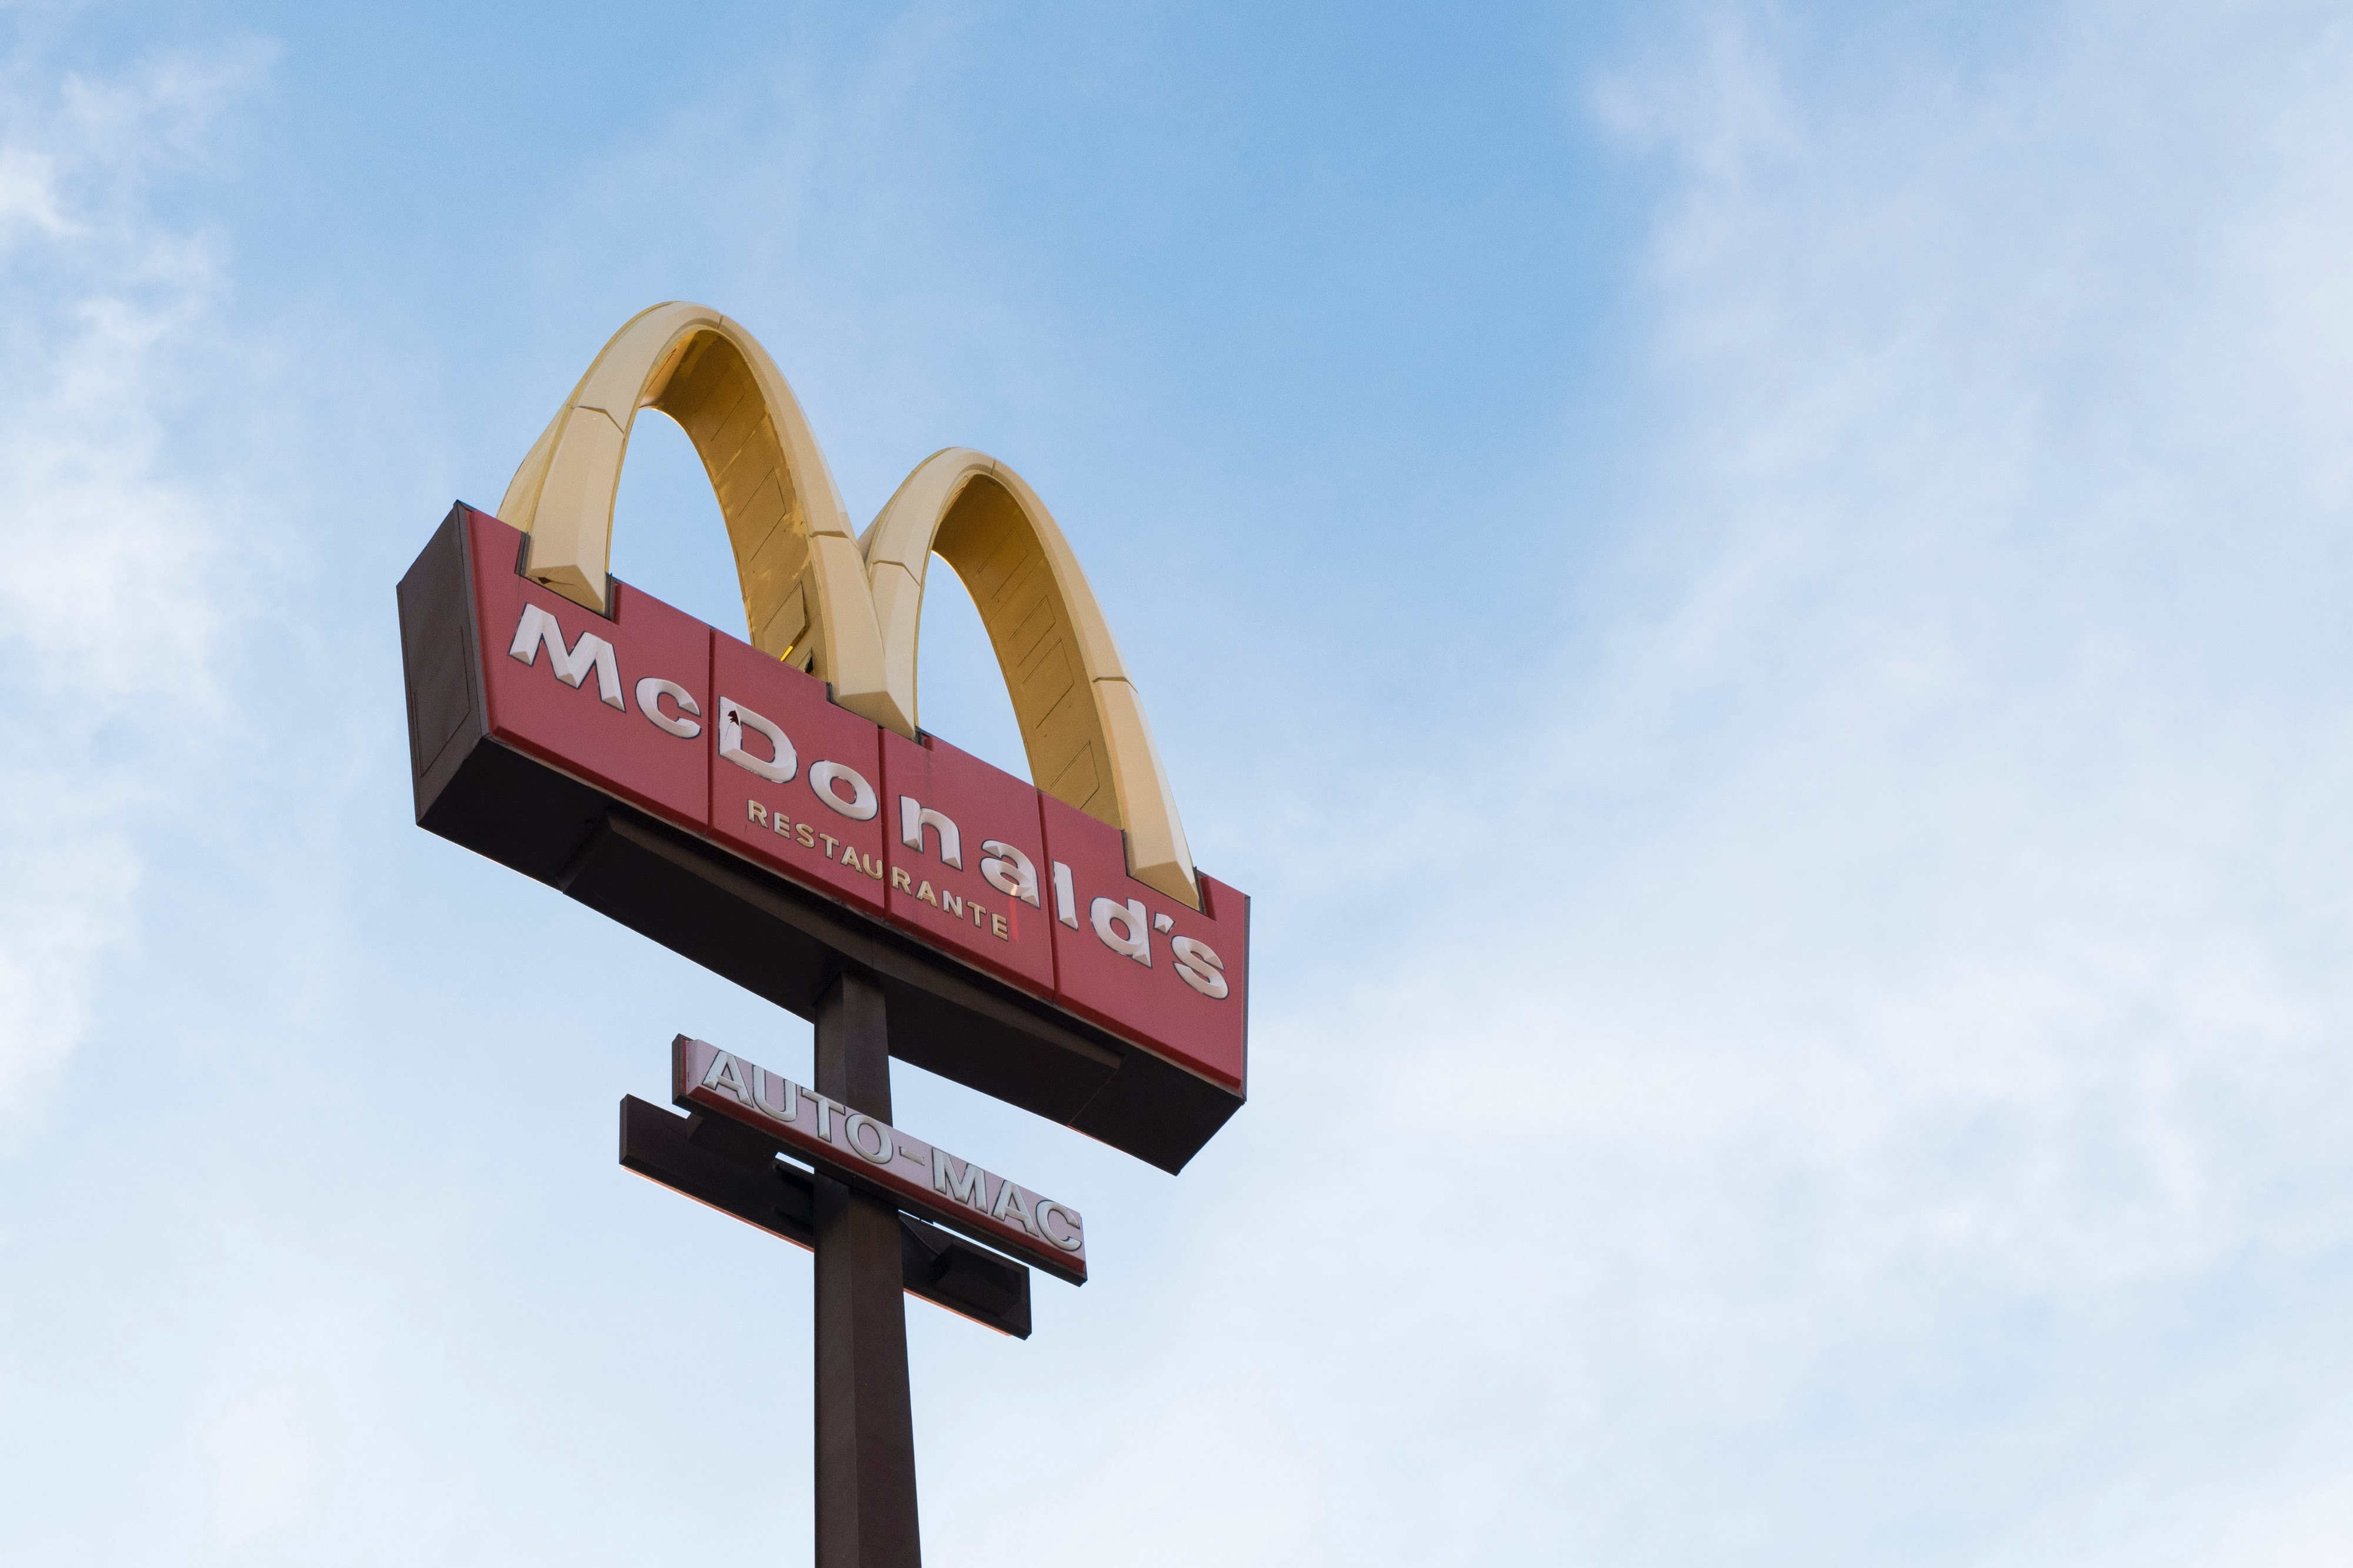 A view towards a cloudy, blue sky showing a lone yellow and red sign for McDonalds